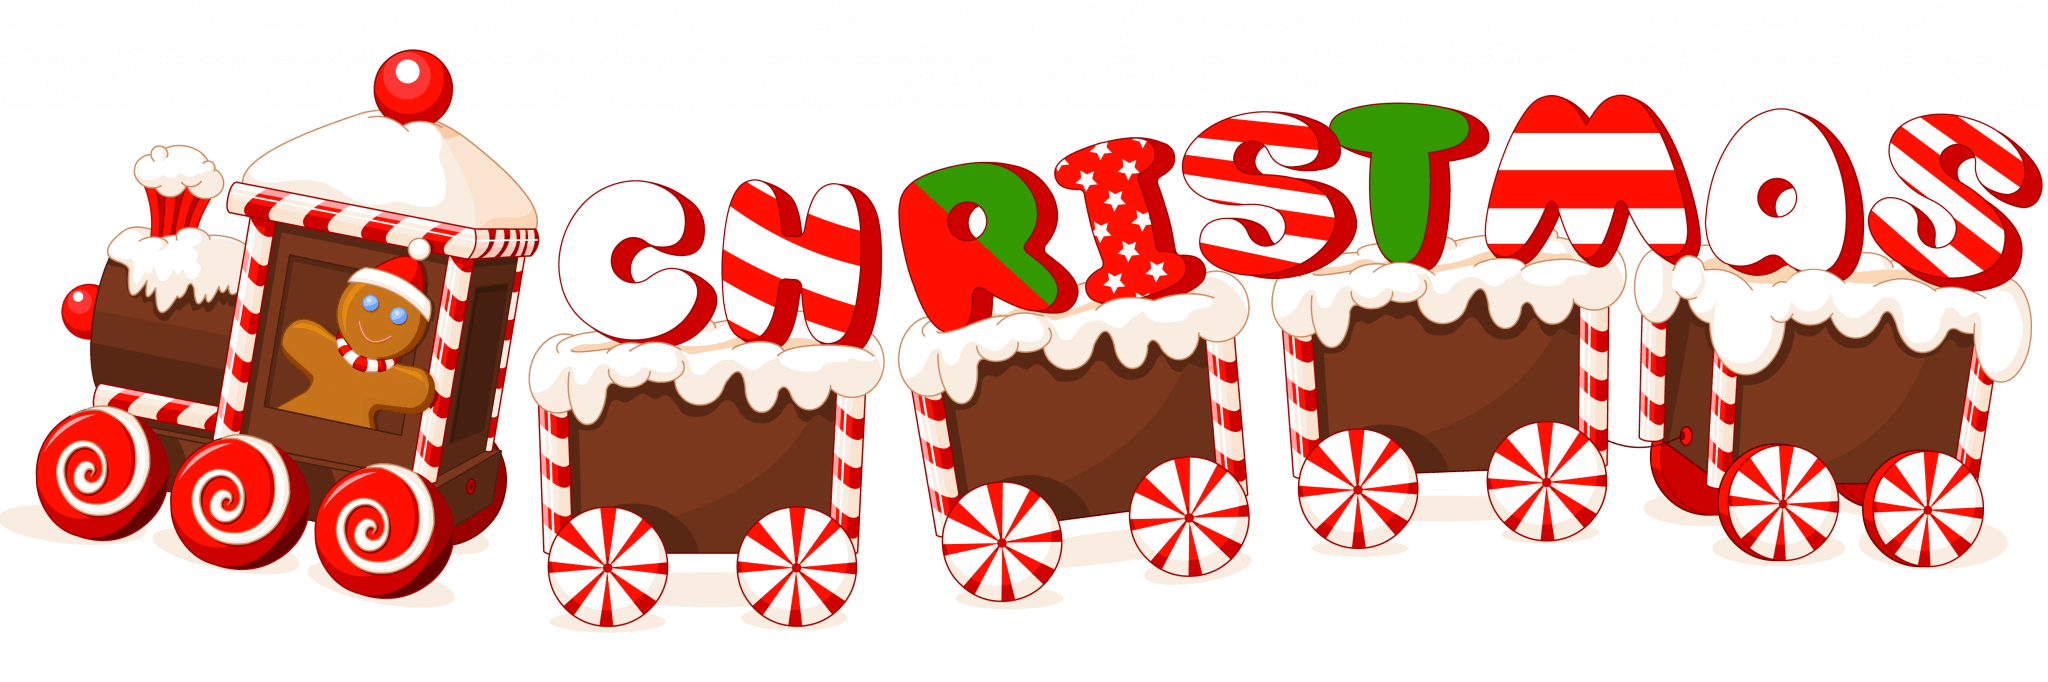 Holly clipart cute. Merry christmas free images